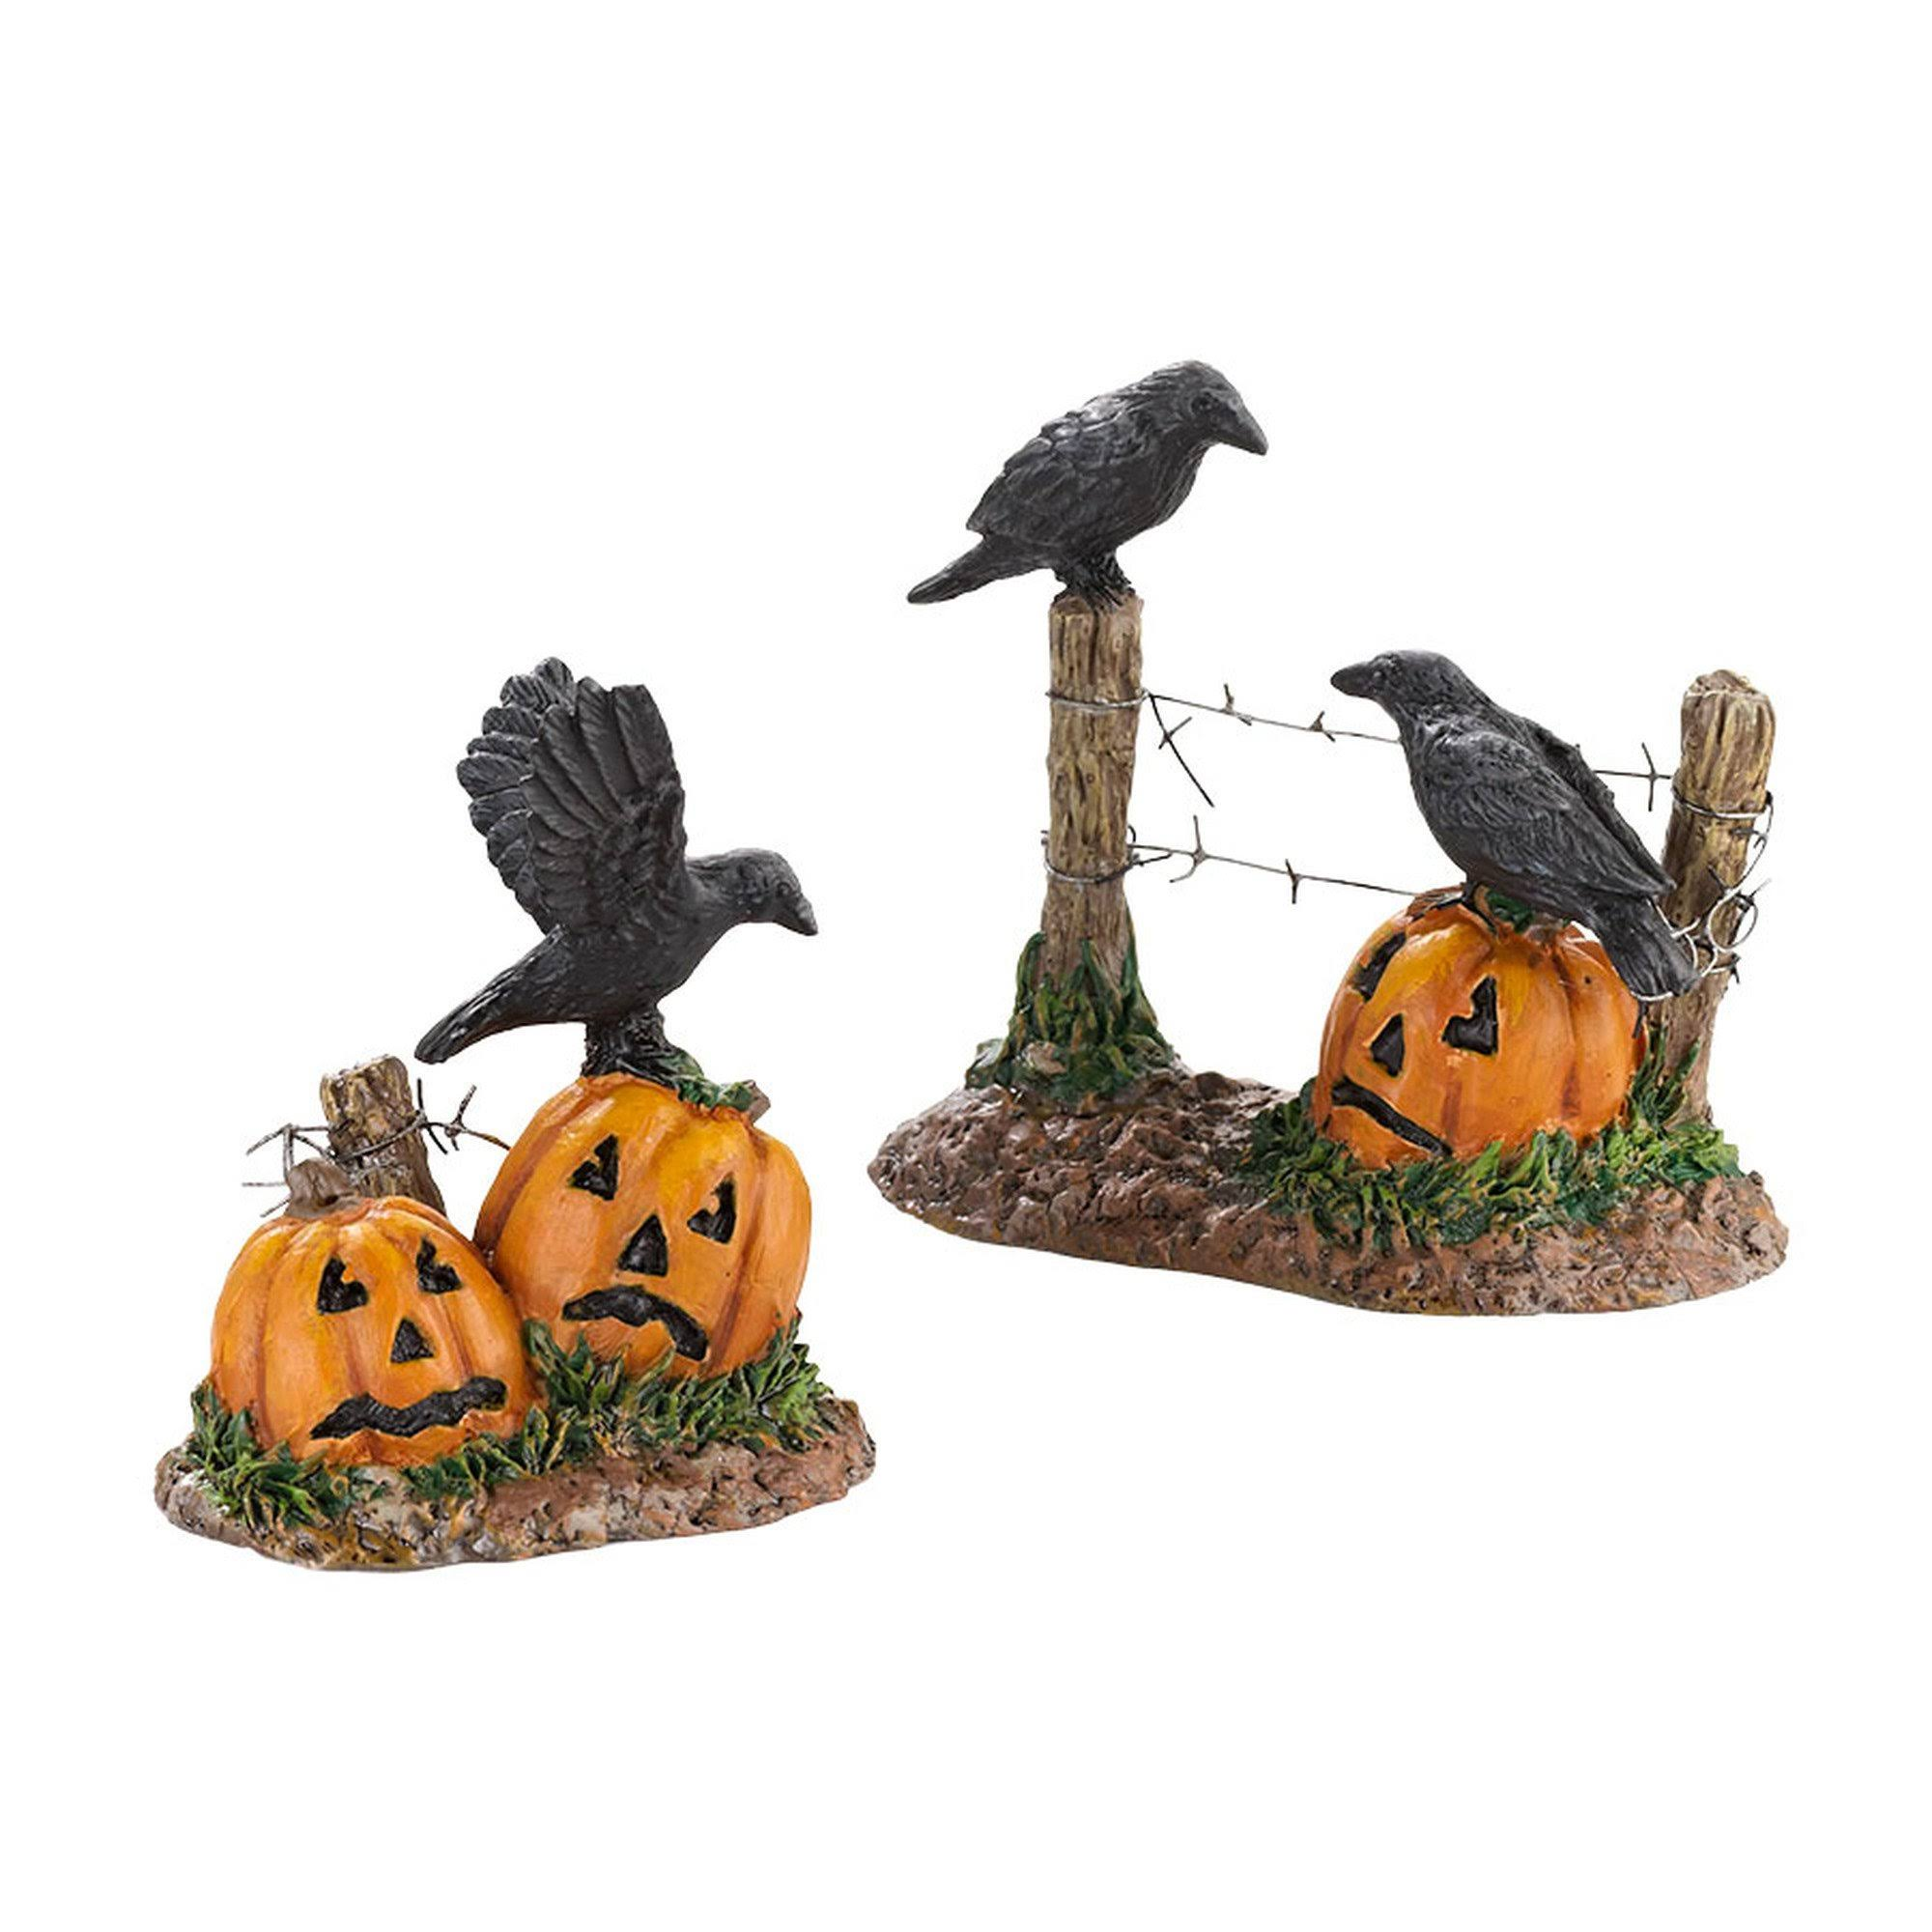 Department 56 Halloween Seasonal Decor